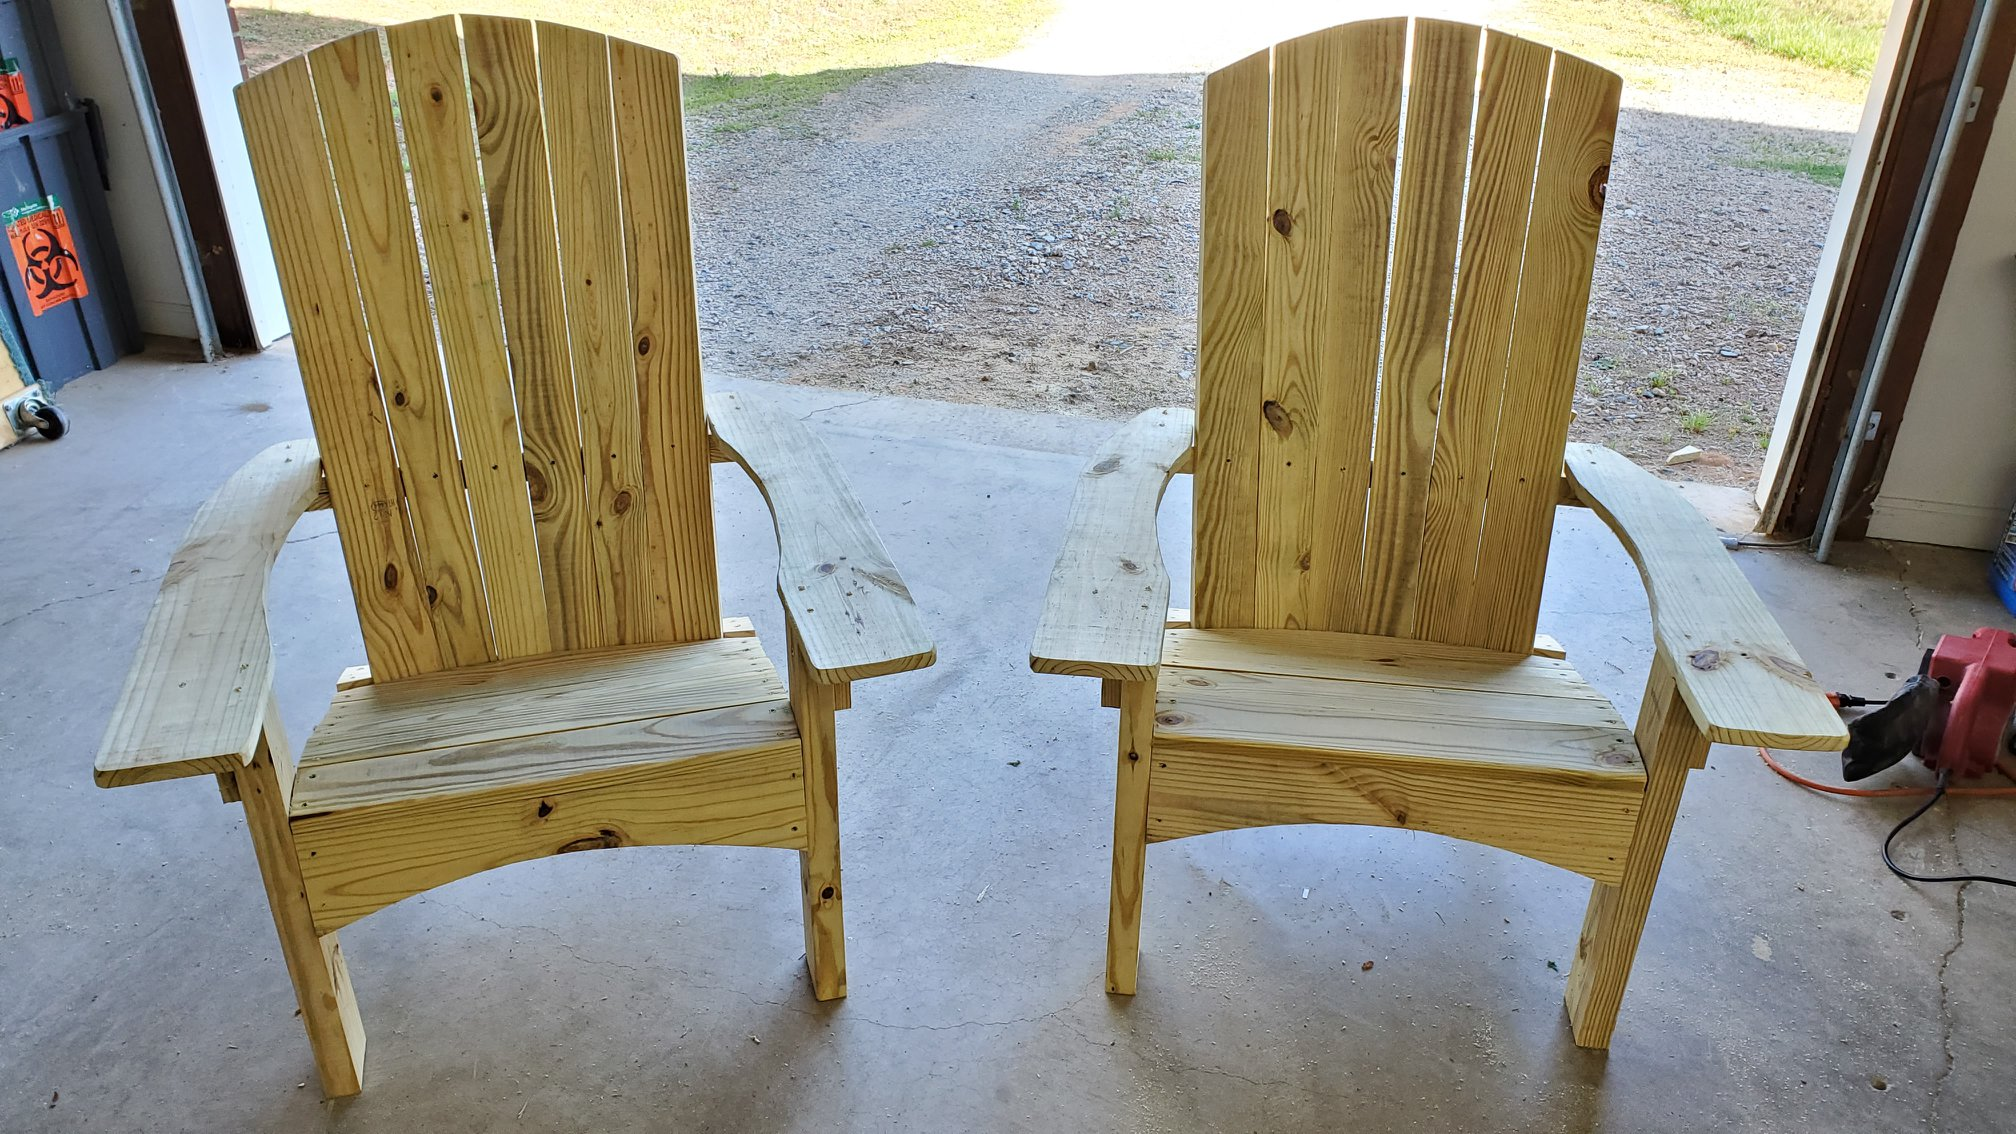 Local twin brothers start chair building business amid pandemic